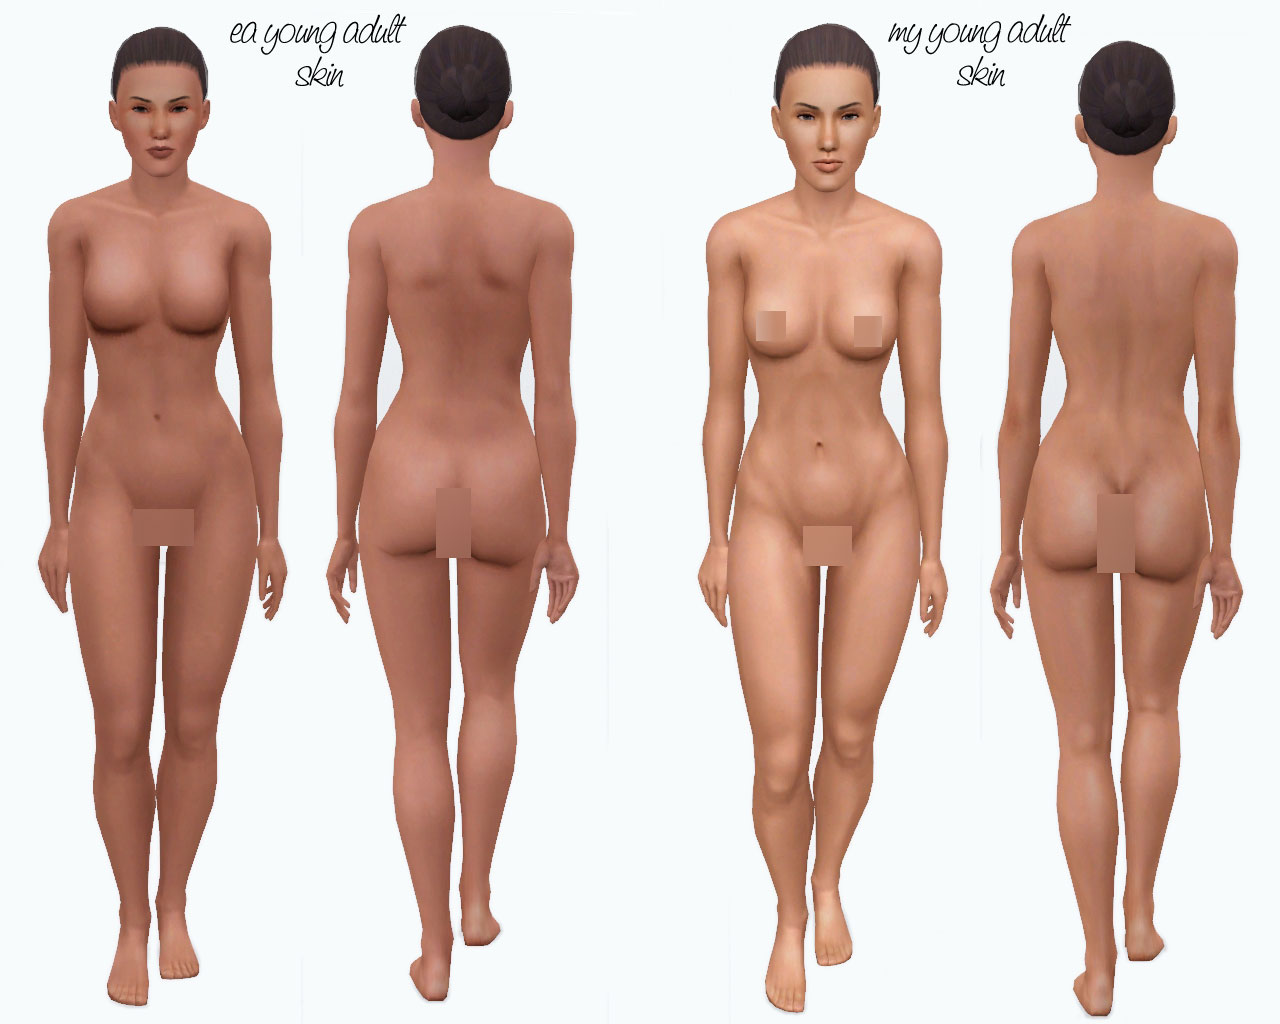 Female nudes sims 4 sexy movies